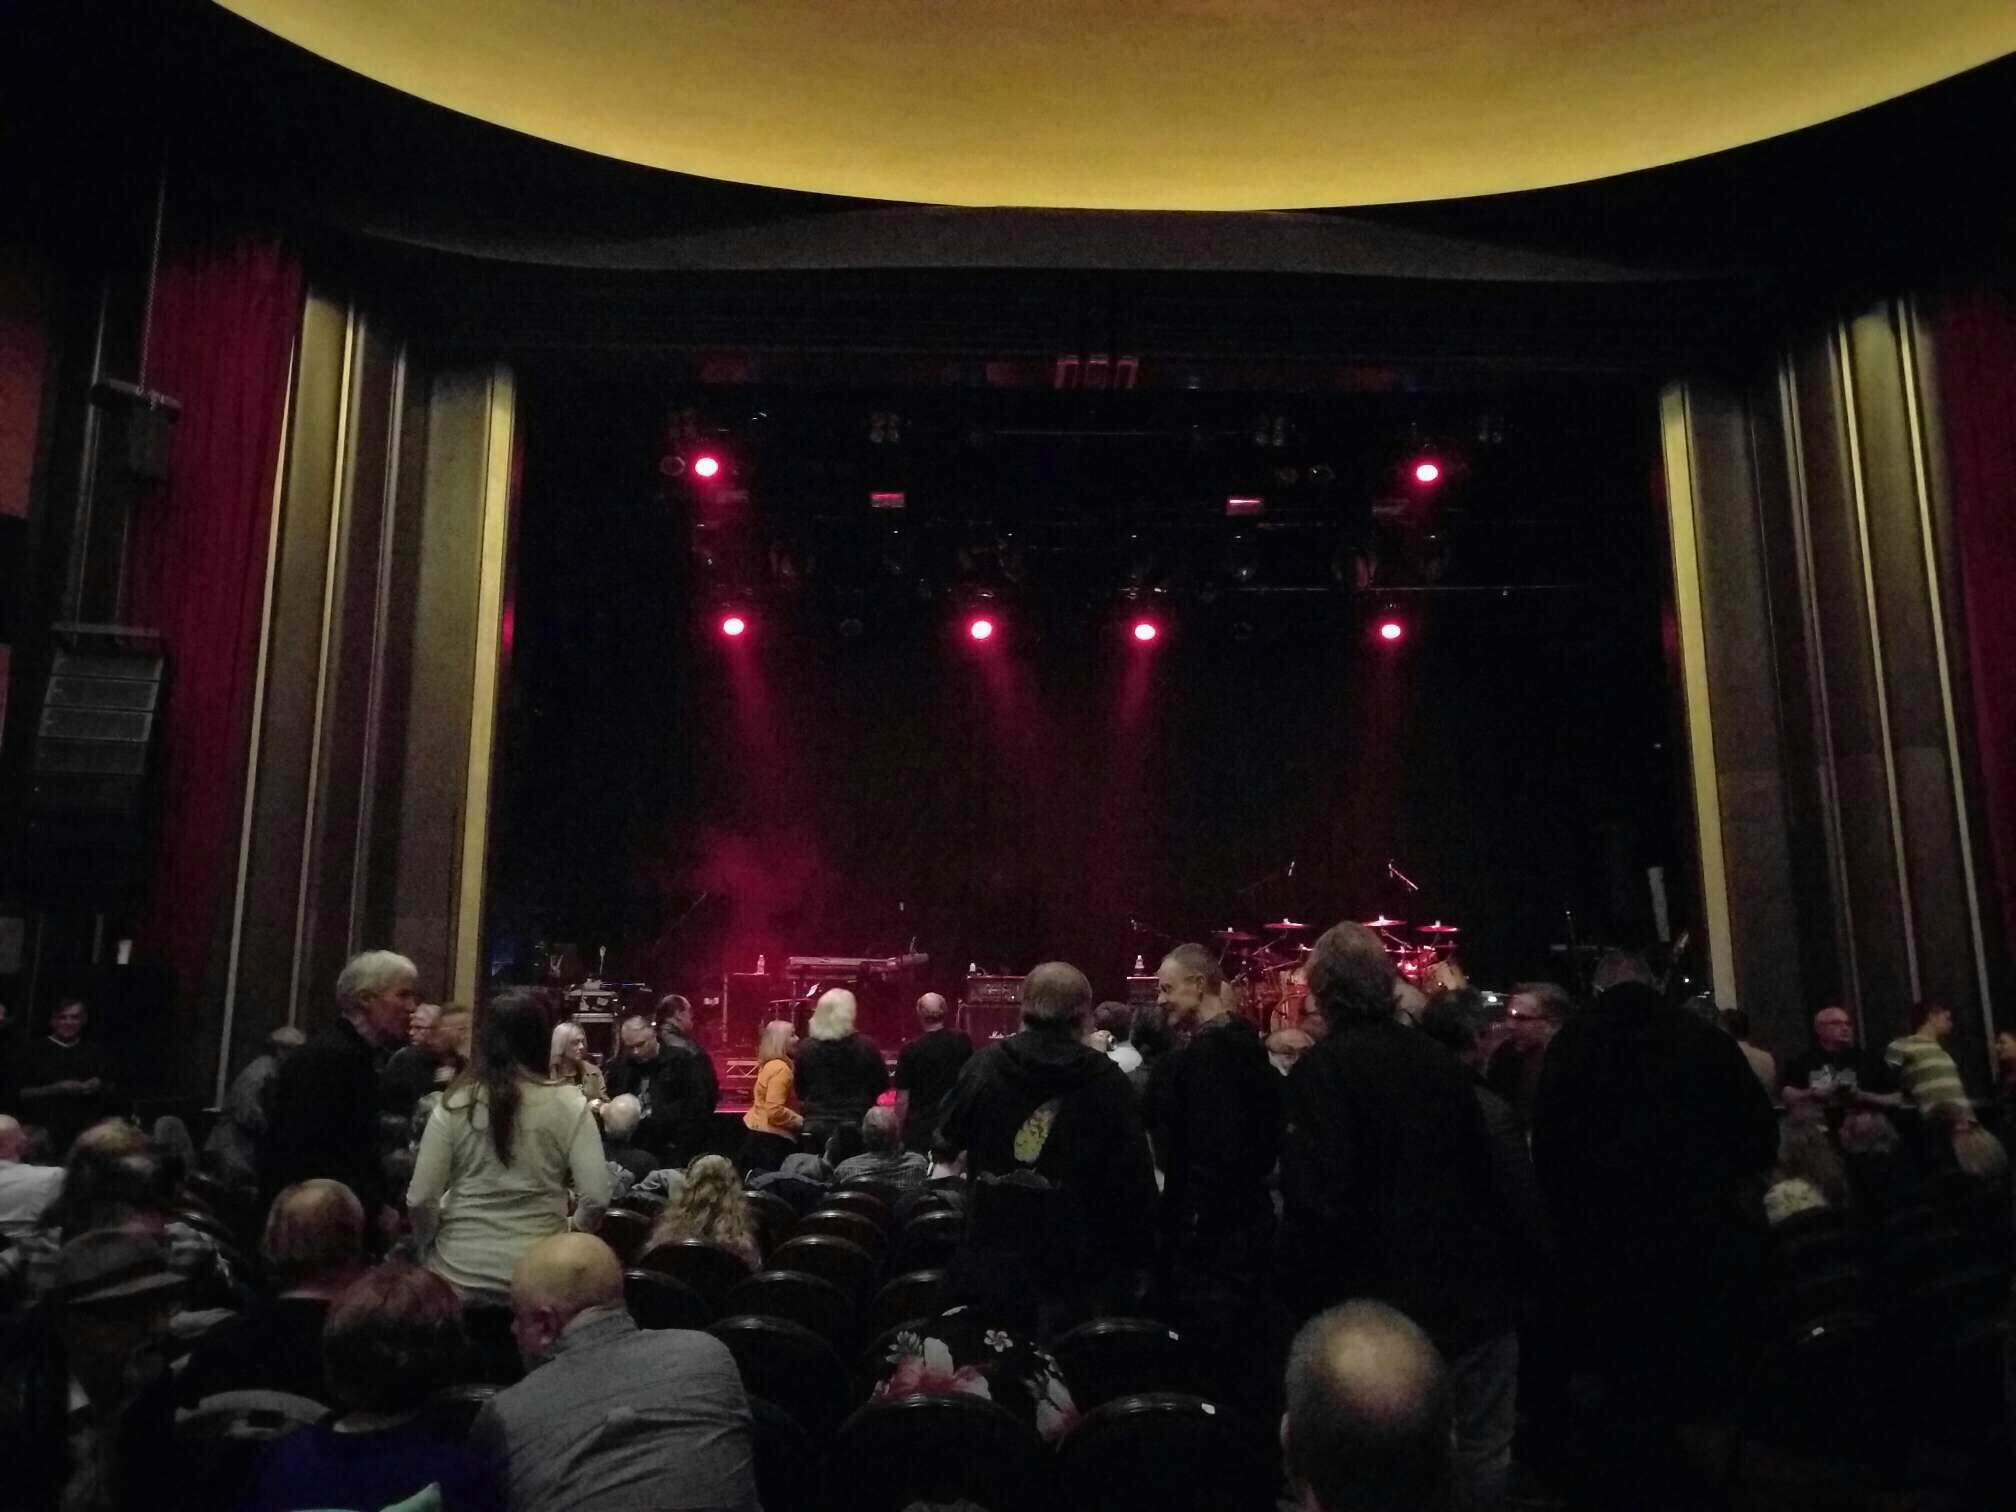 Vogue Theatre Section Orchestra Row 13 Seat 17